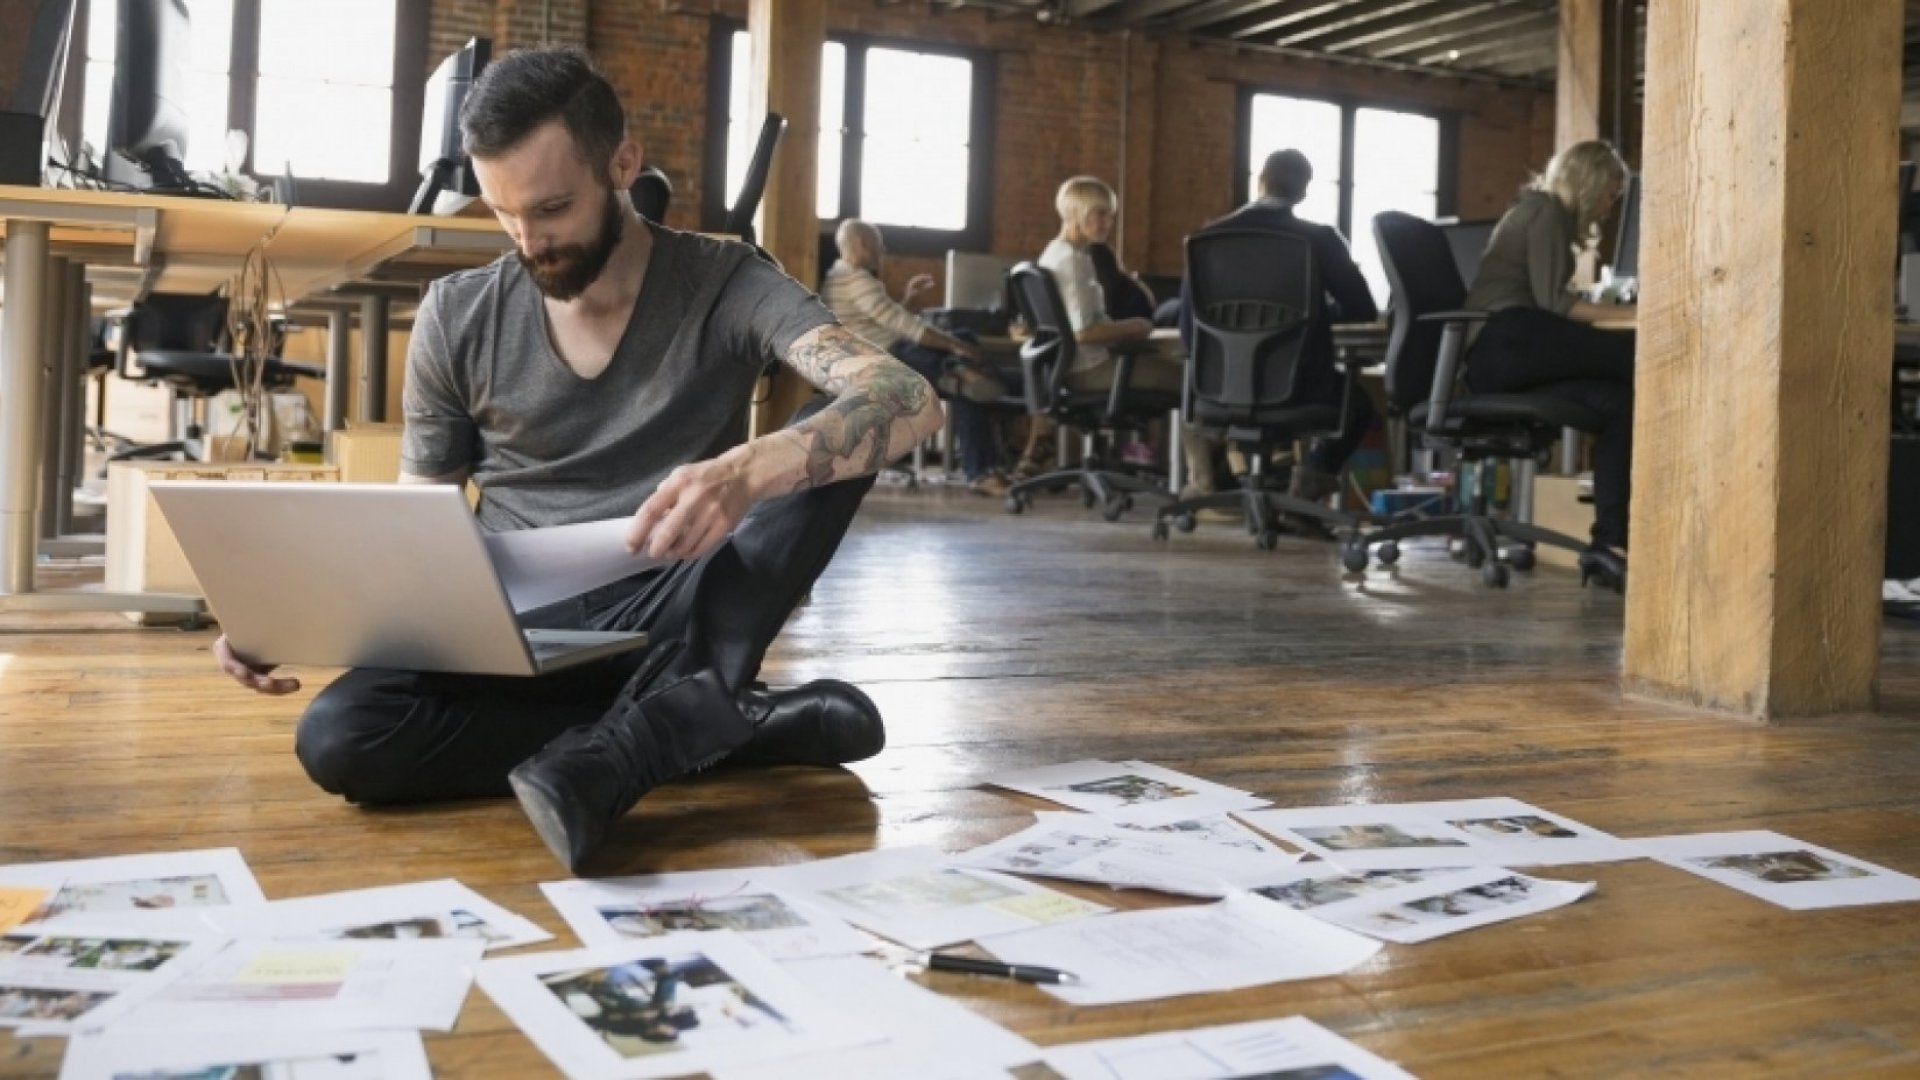 4 Neat Startup Culture Hacks That Promote Teamwork